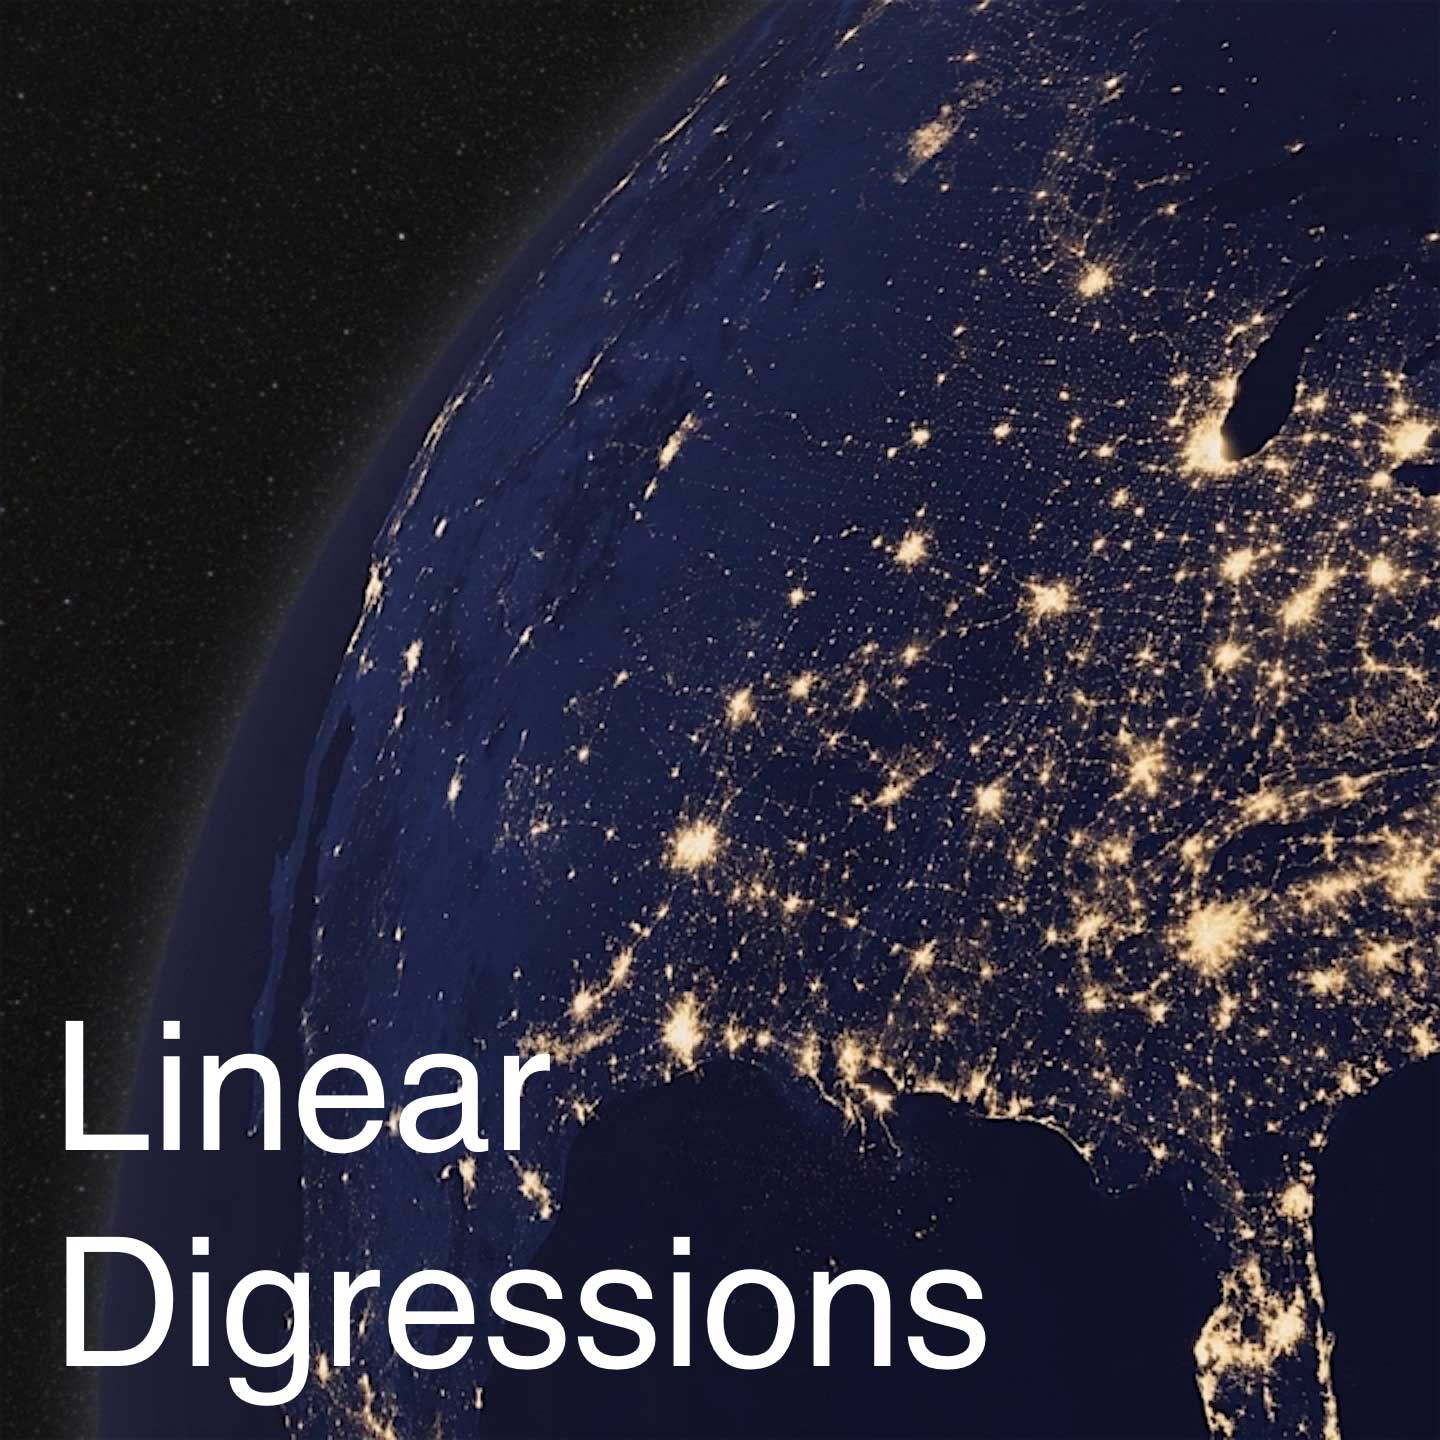 Linear Digressions Podcast Logo